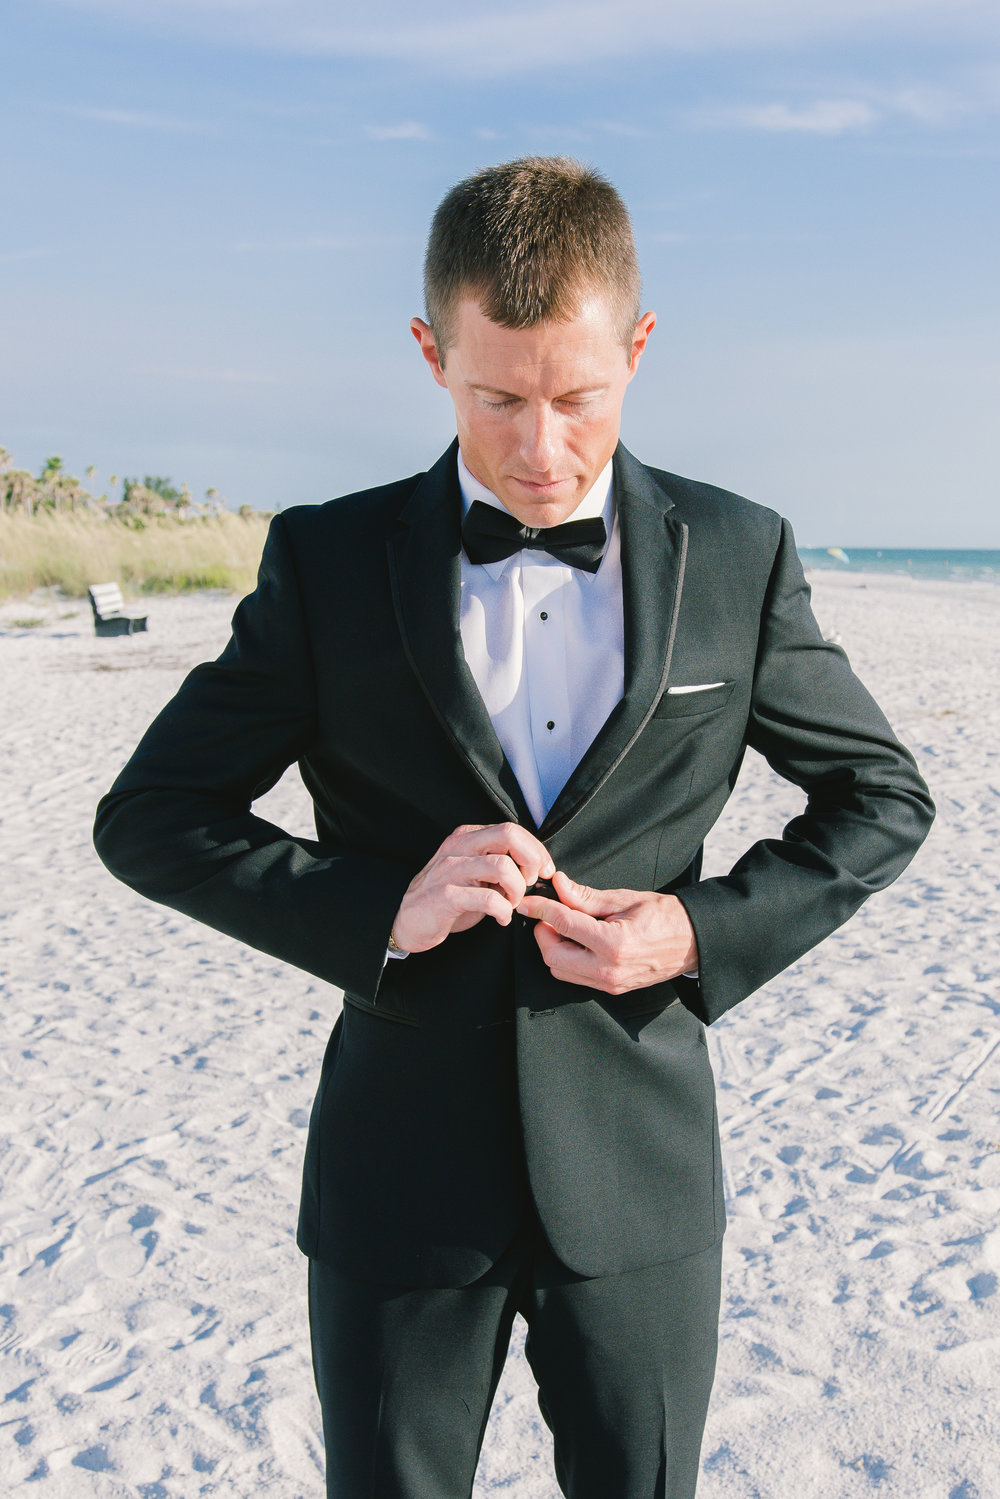 Tampa wedding photography , St.Pete beach wedding, St.Pete wedding photographer, Elopement photography